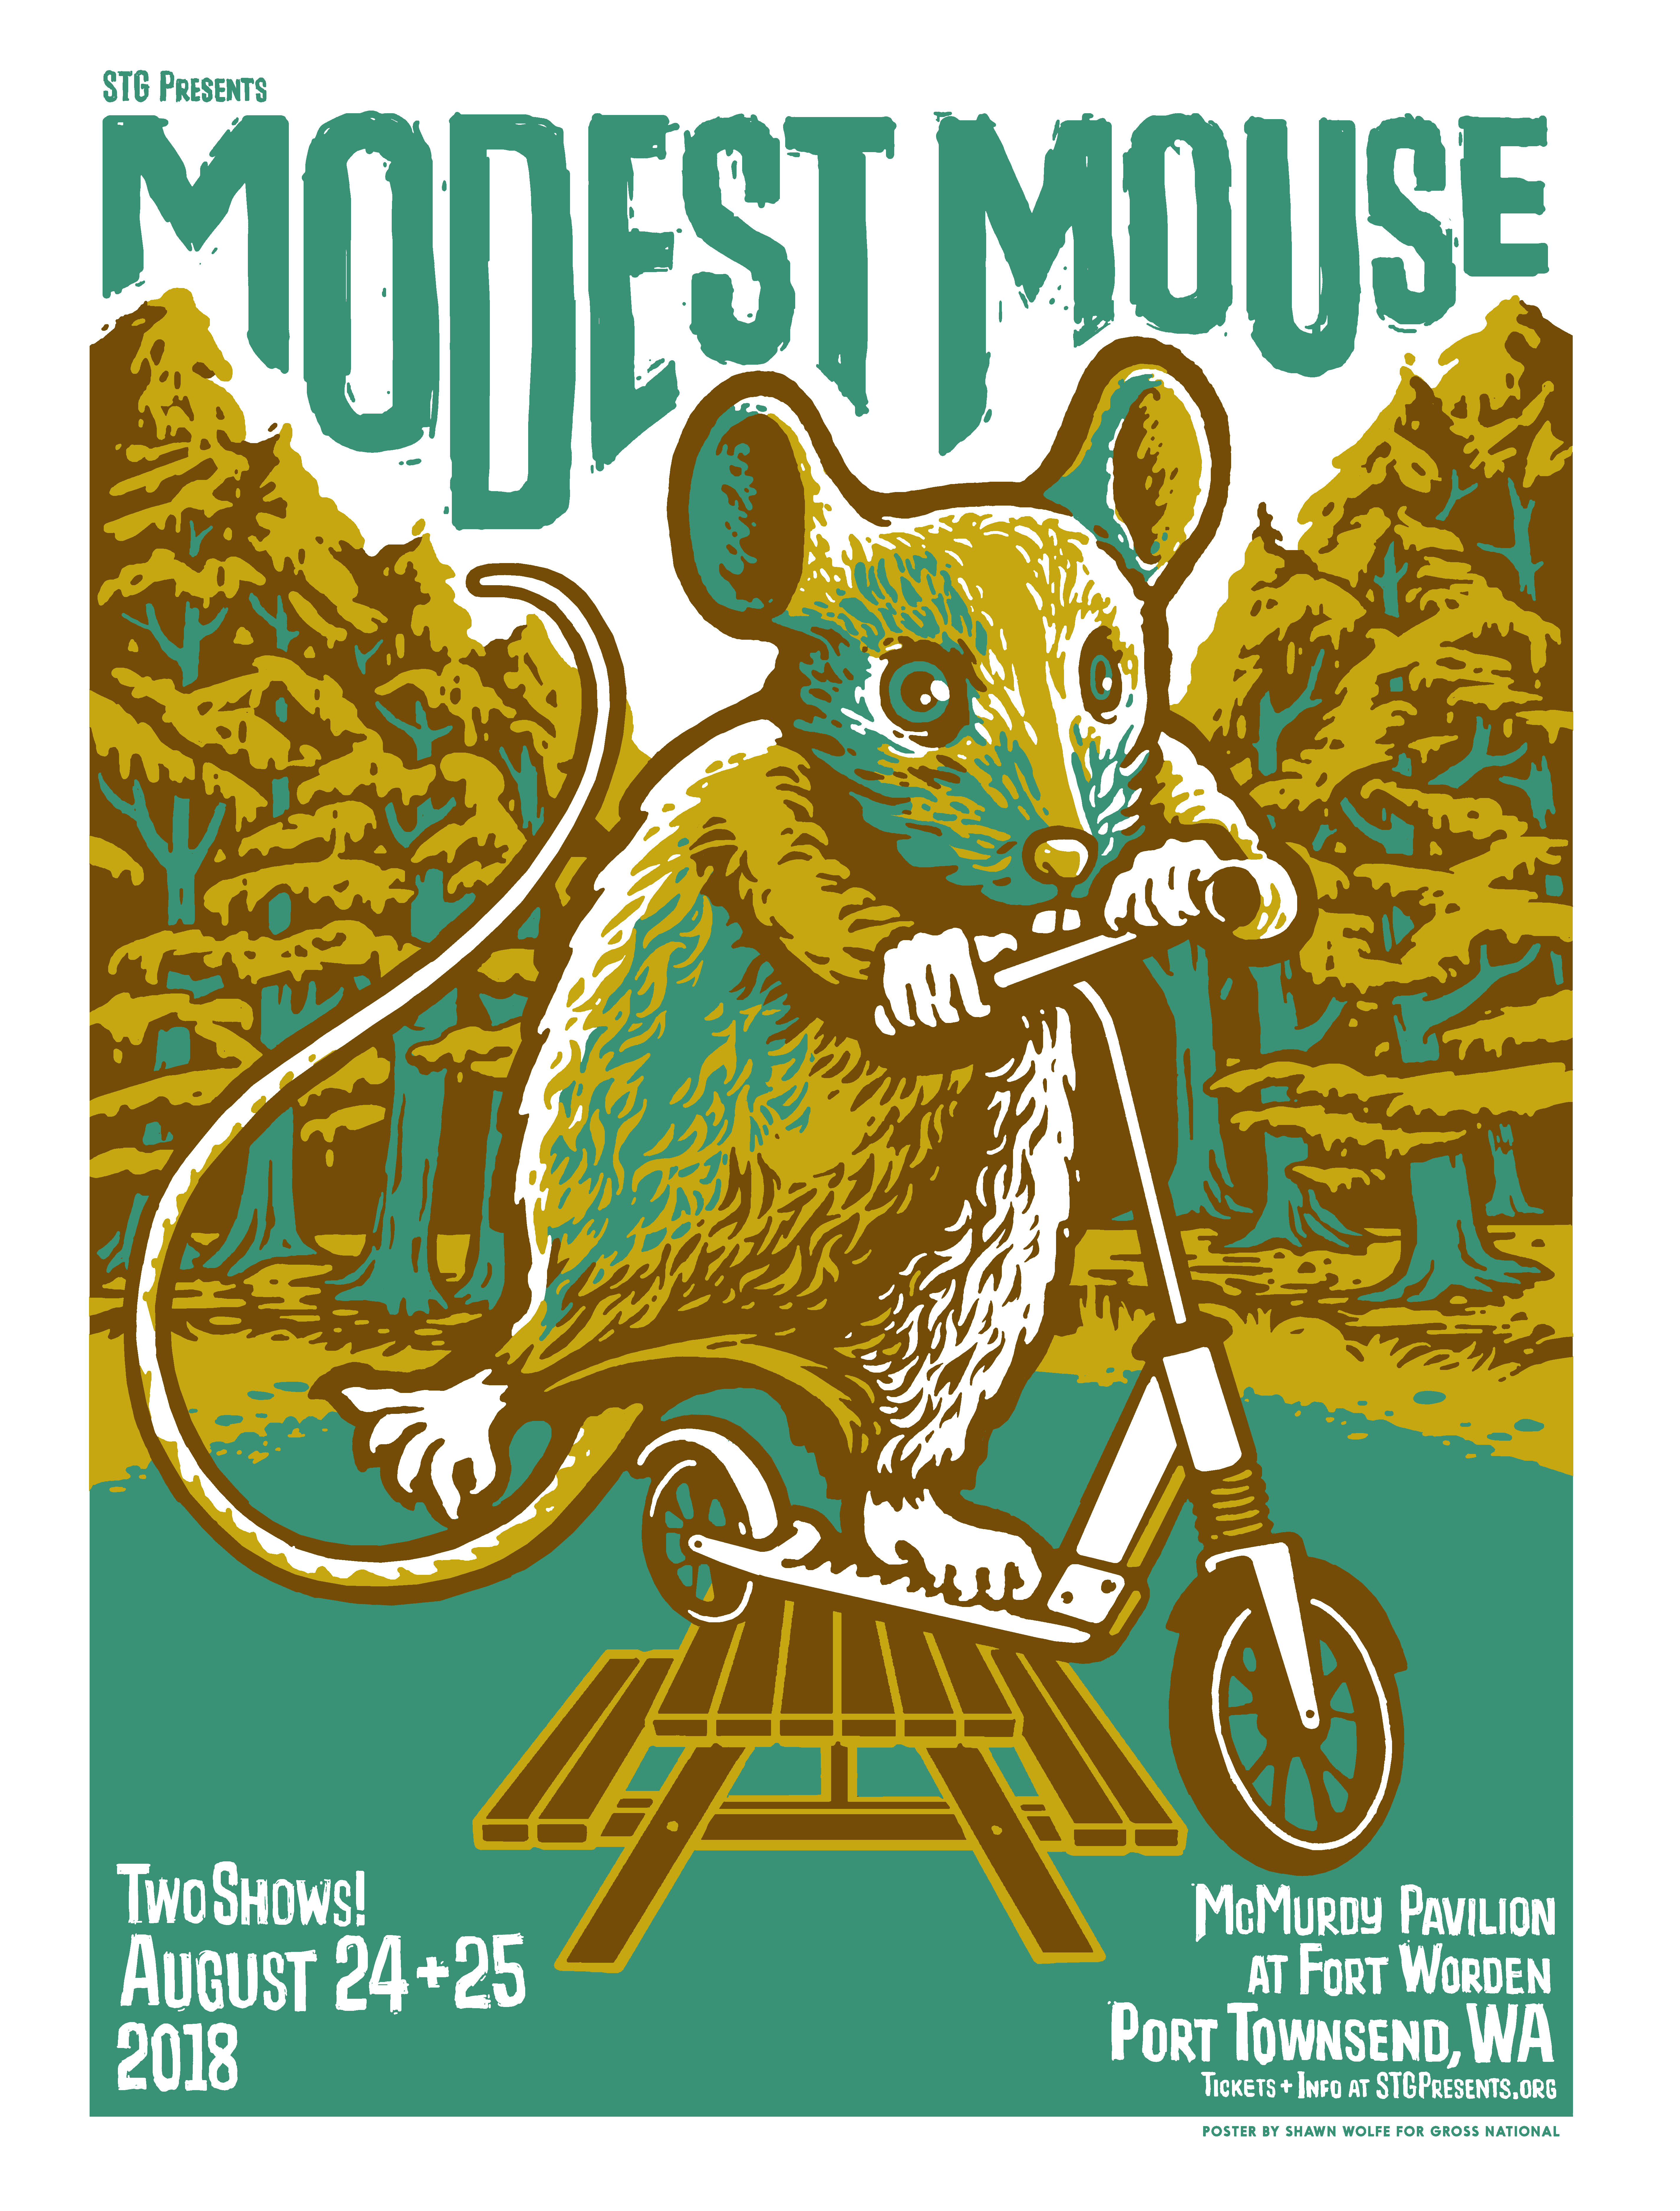 Its Time For An Adventure Cant Think Of A Better Way To Spend The Last Days Summer On Road Trip Port Townsend See Awesome Outdoor Concert